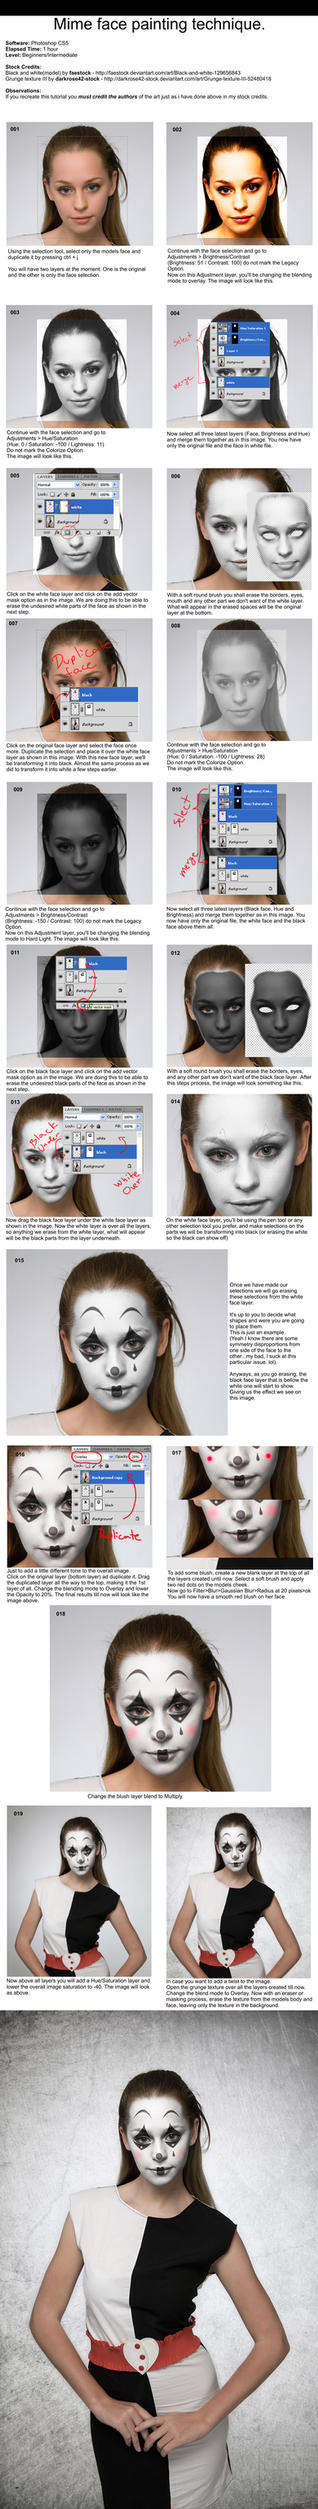 Beginners tutorials on photoshop tutorials deviantart snakesan 432 43 mime face painting tutorial photoshop by pshoudini baditri Gallery